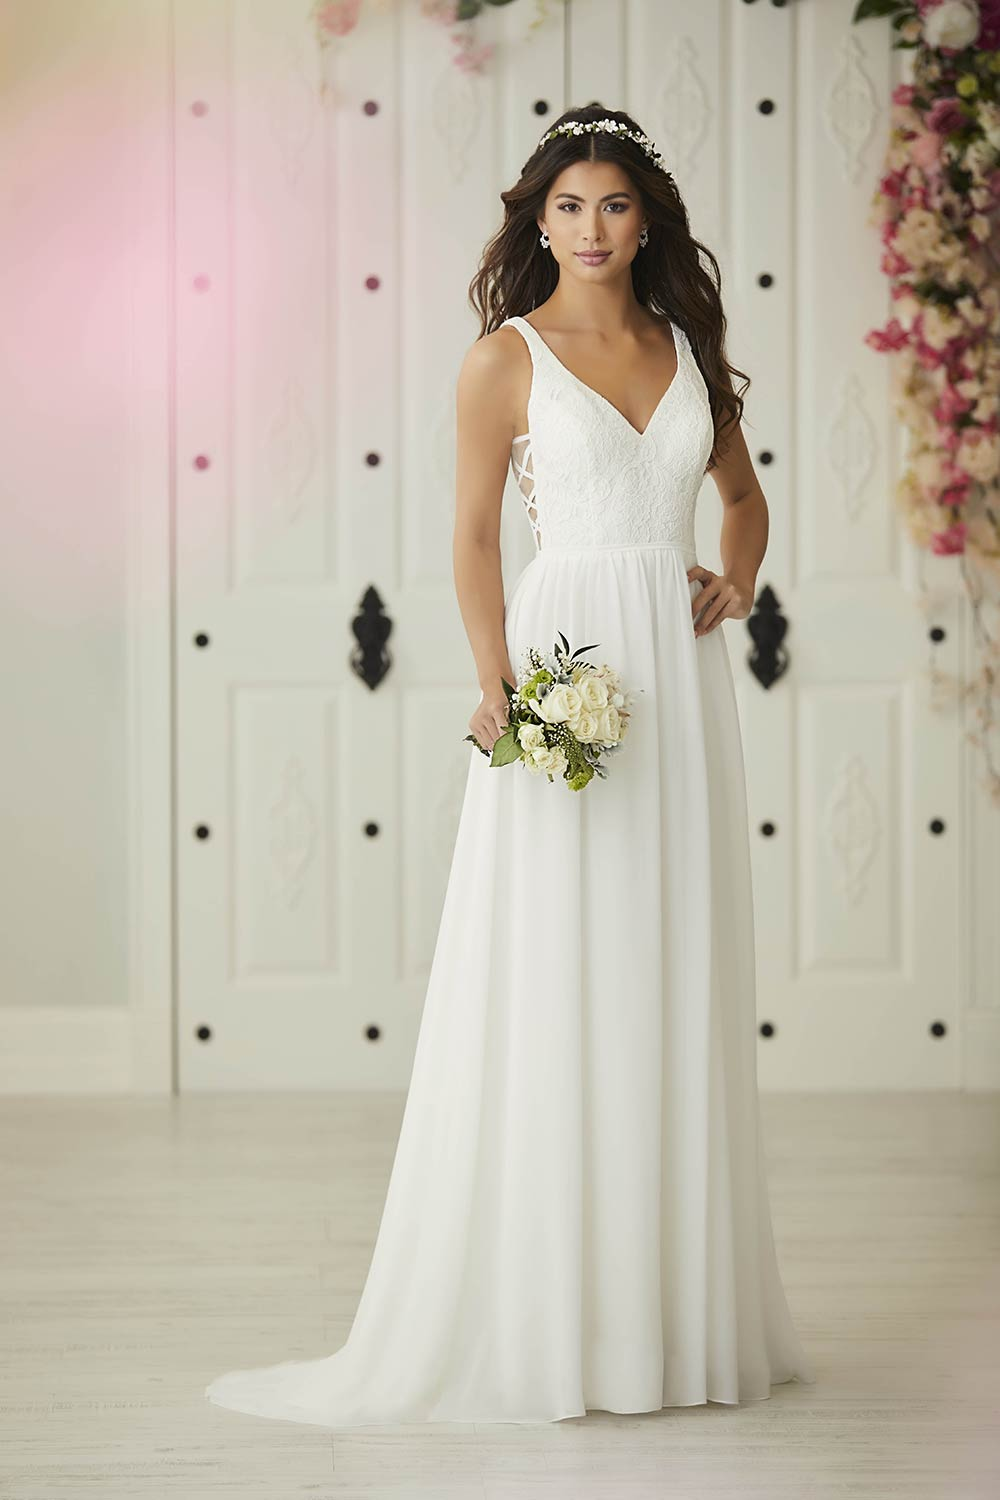 bridesmaid-dresses-jacquelin-bridals-canada-27315